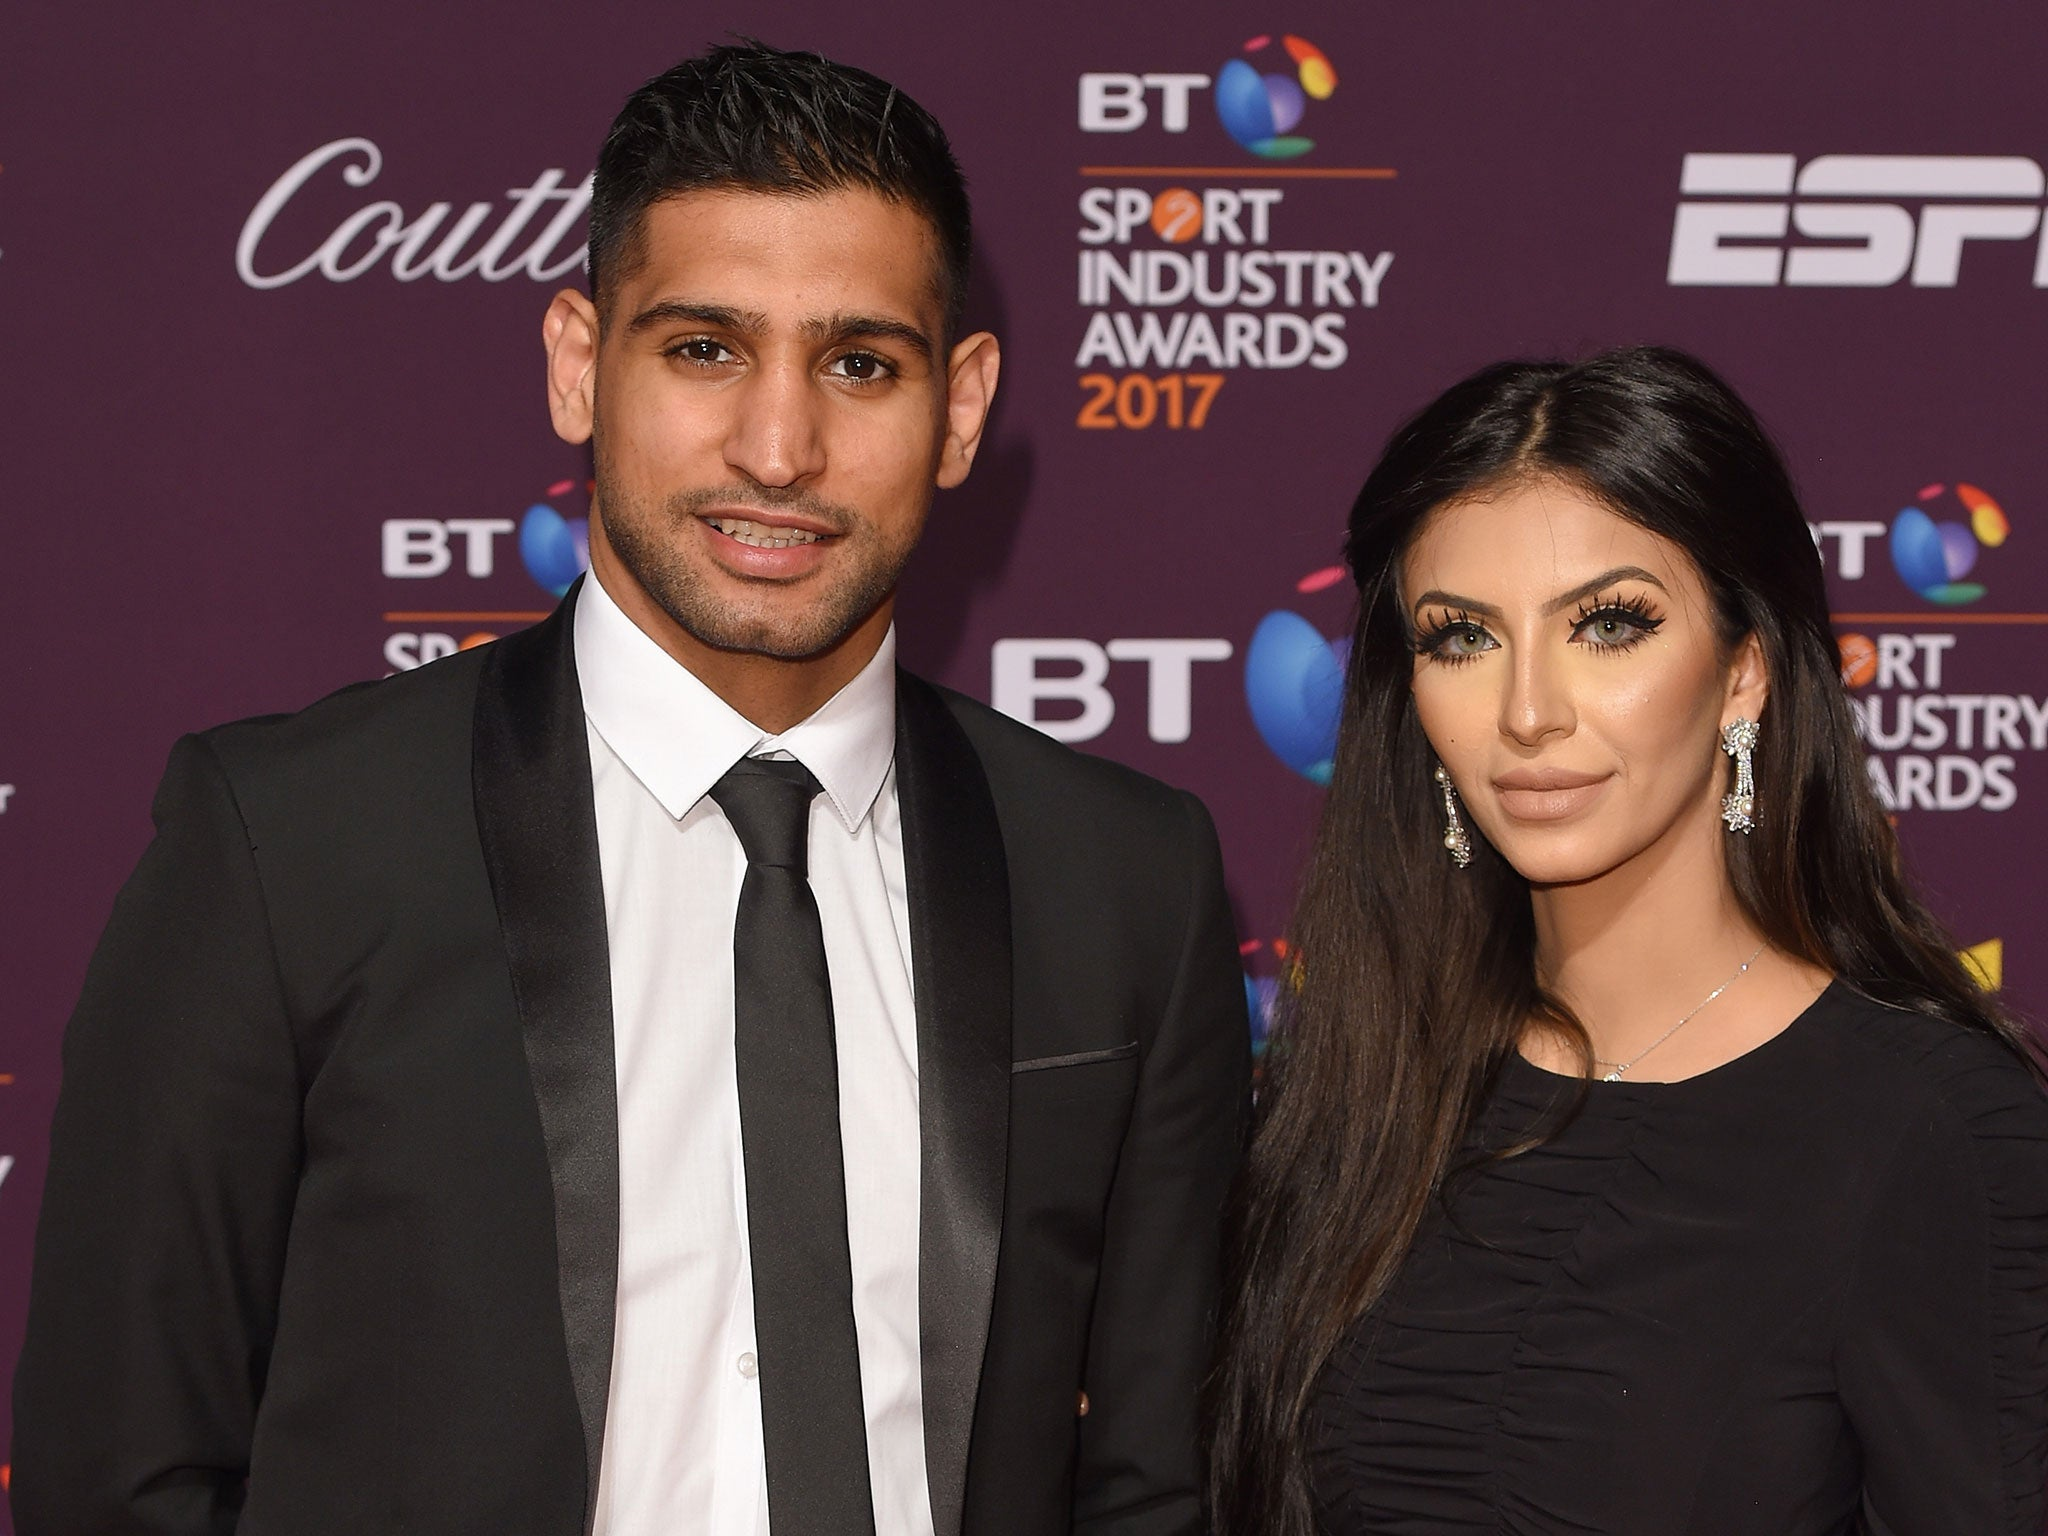 Anthony Joshua responds to Amir Khan after being accused of having a